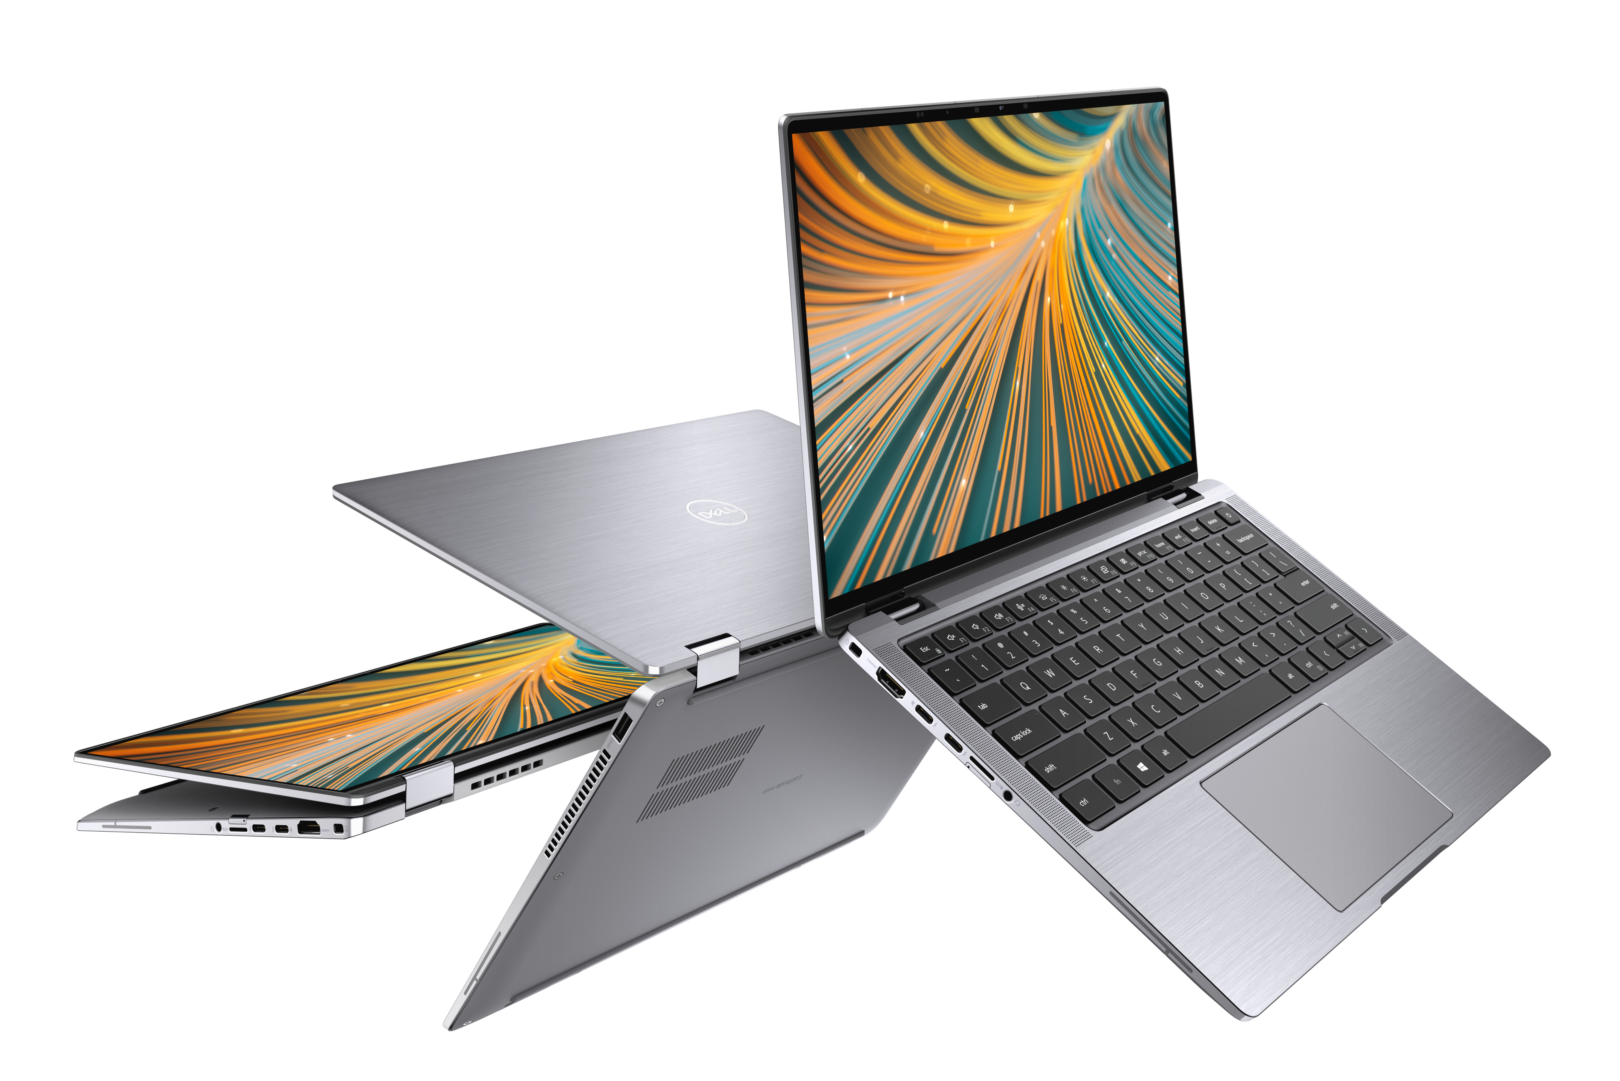 Dell CES 2021: All of the major Dell and Alienware announcements at CES